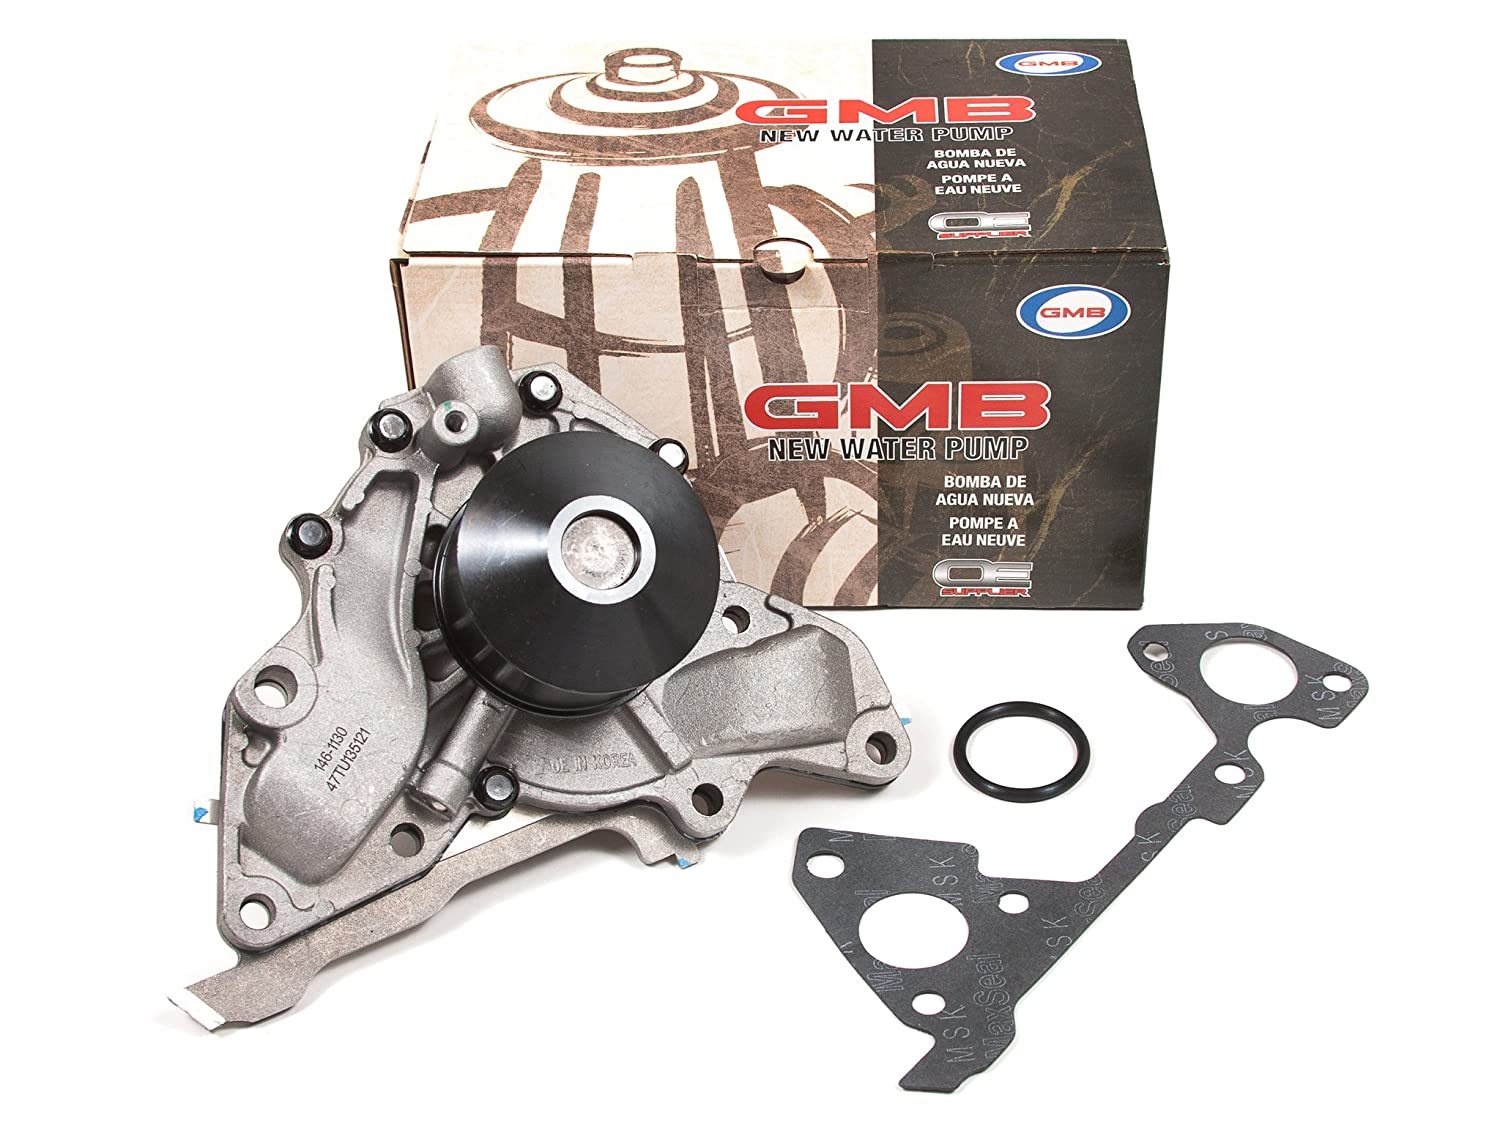 Amazon.com: Evergreen TBK323WP Fits 00-06 Hyundai XG350 Santa Fe Kia Sedona 3.5L Timing Belt Kit GMB Water Pump: Automotive